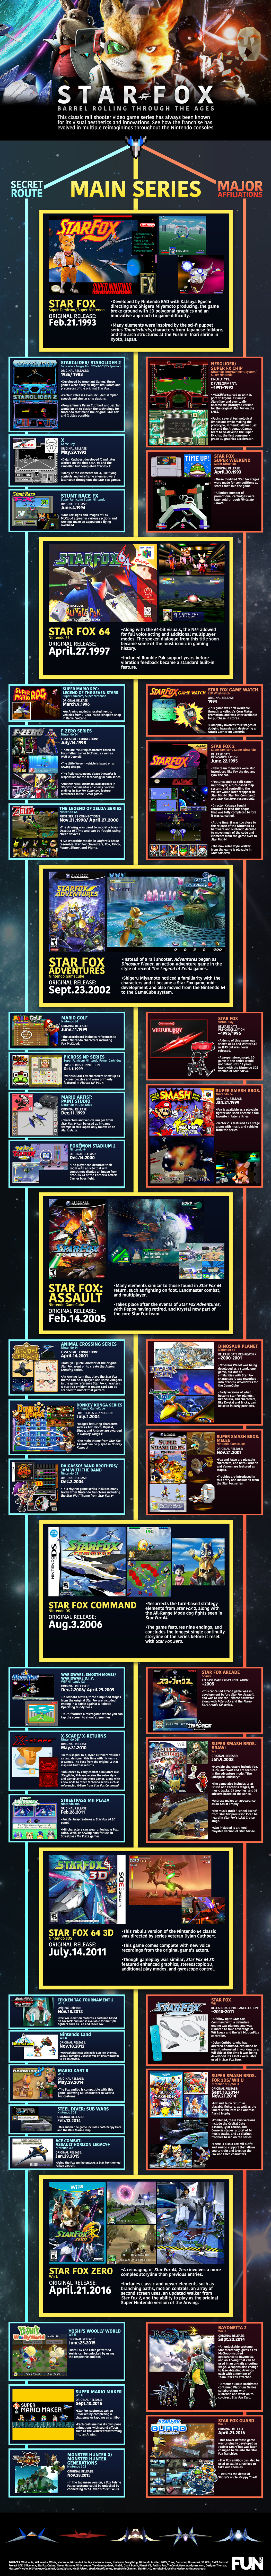 Star Fox: Barrel Rolling Through the Ages